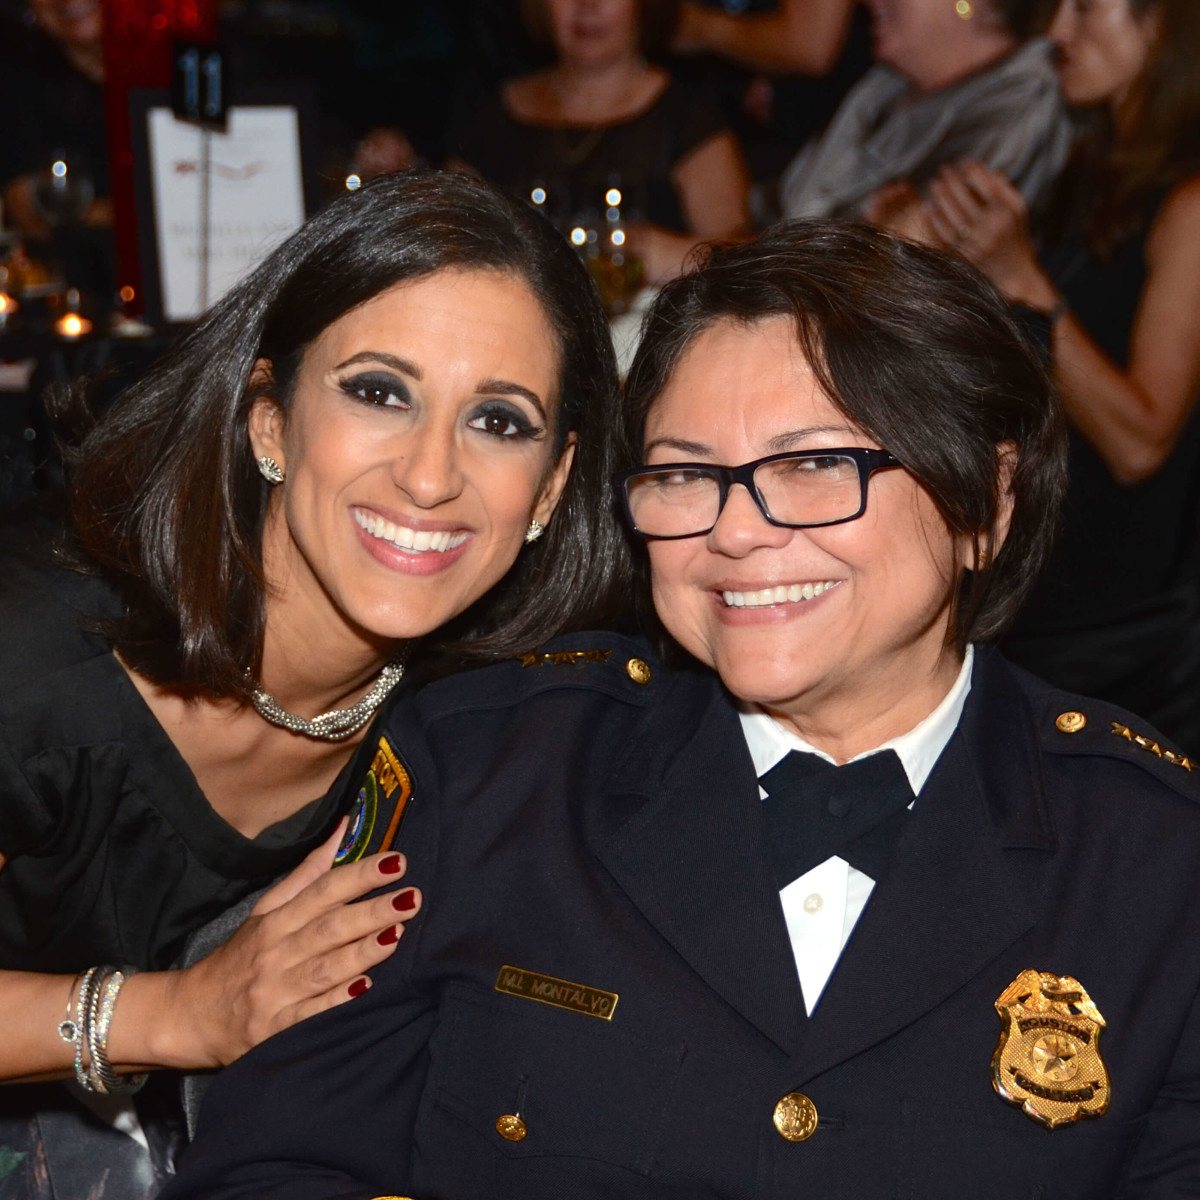 Houston, Crime Stoppers of Houston gala, Nov. 2016, Rania Mankarious, Houston Police Department Acting Chief Martha Montalvo